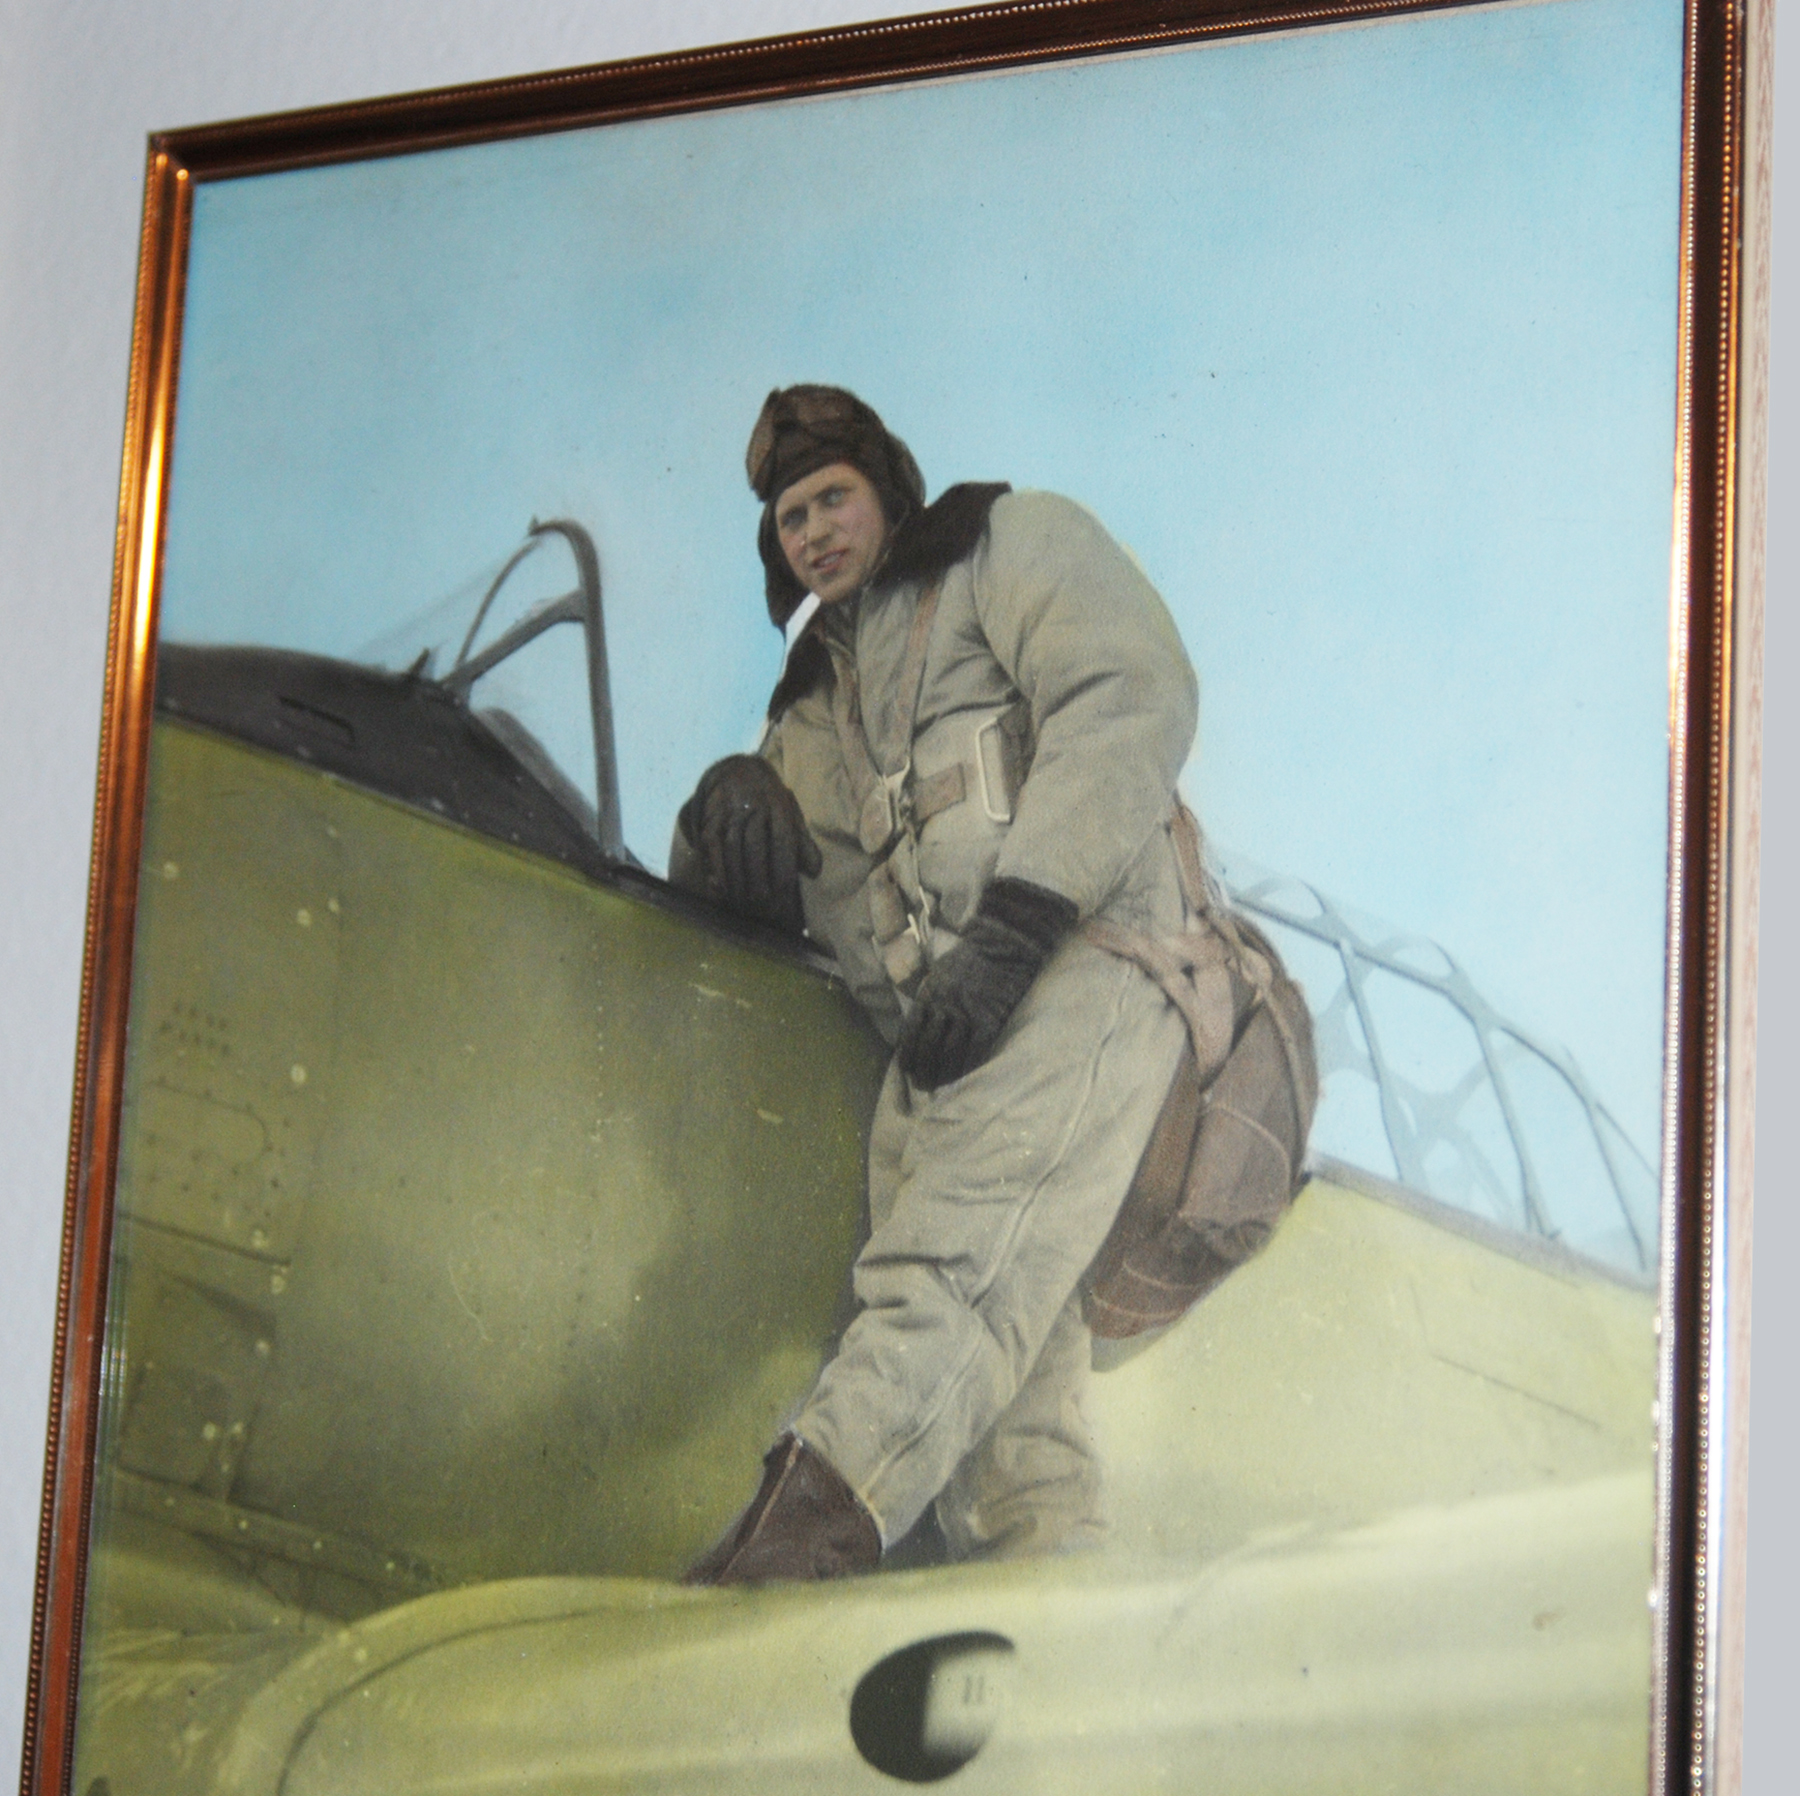 Wearing his flight suit, Flying Officer John Newell stands on the wing of his Second World War aircraft in a framed, undated image hanging in the Newells' home in Ottawa, Ontario. PHOTO: Alexandra Baillie-David